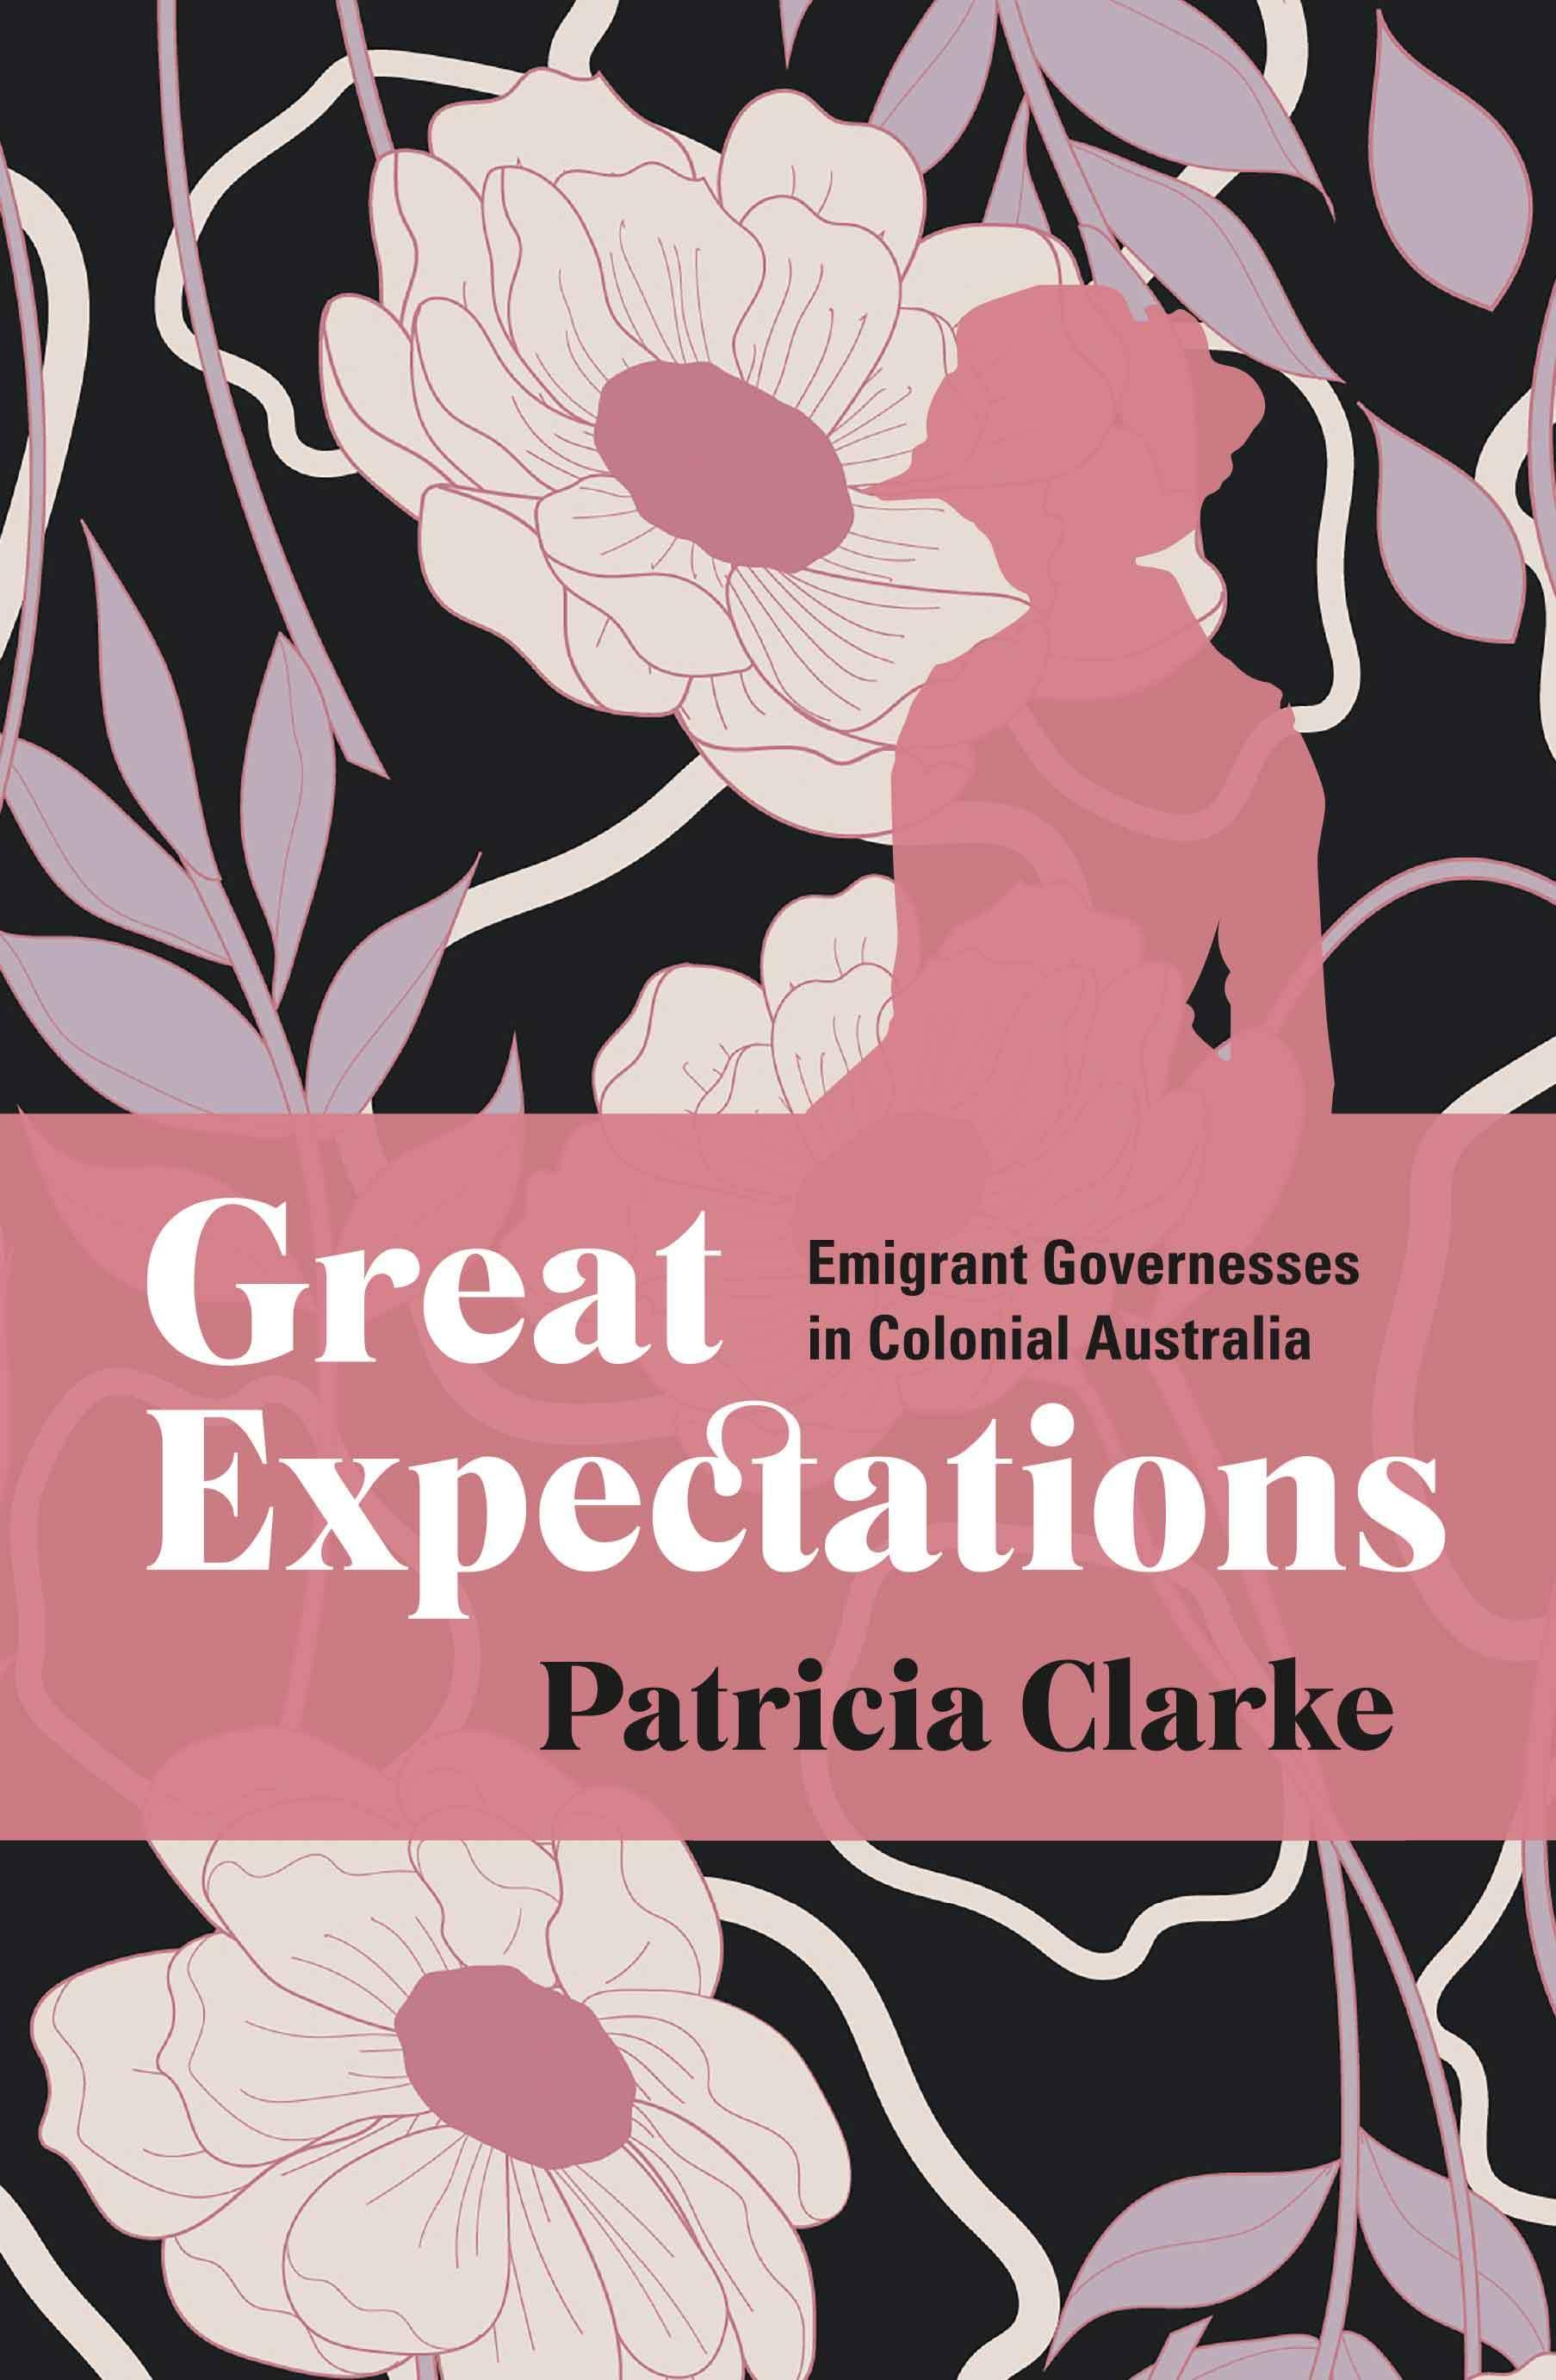 Great Expectations: Emigrant Governesses in Colonial Australia